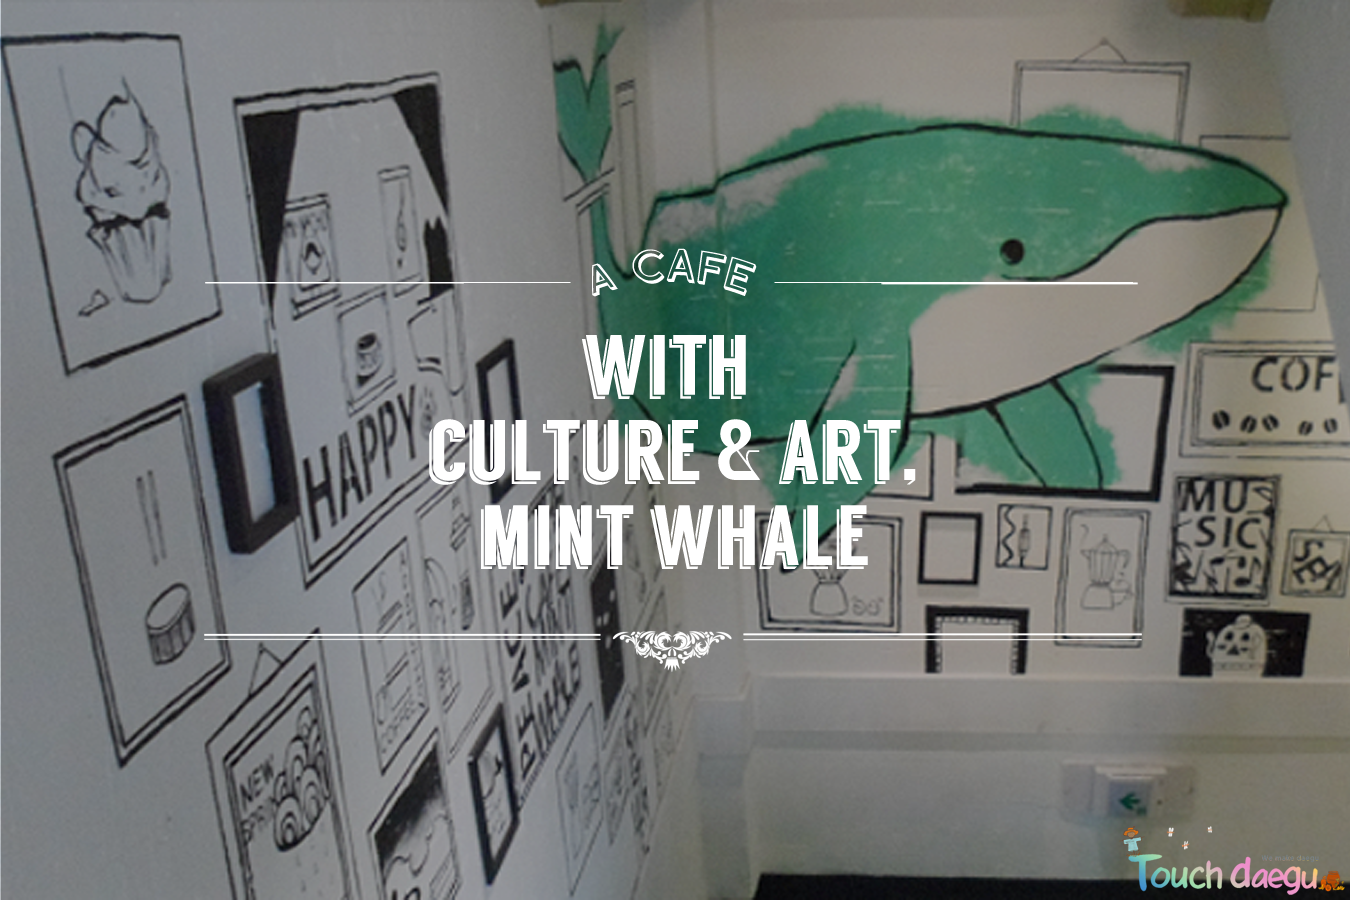 The enterance of Mint Whale cafe